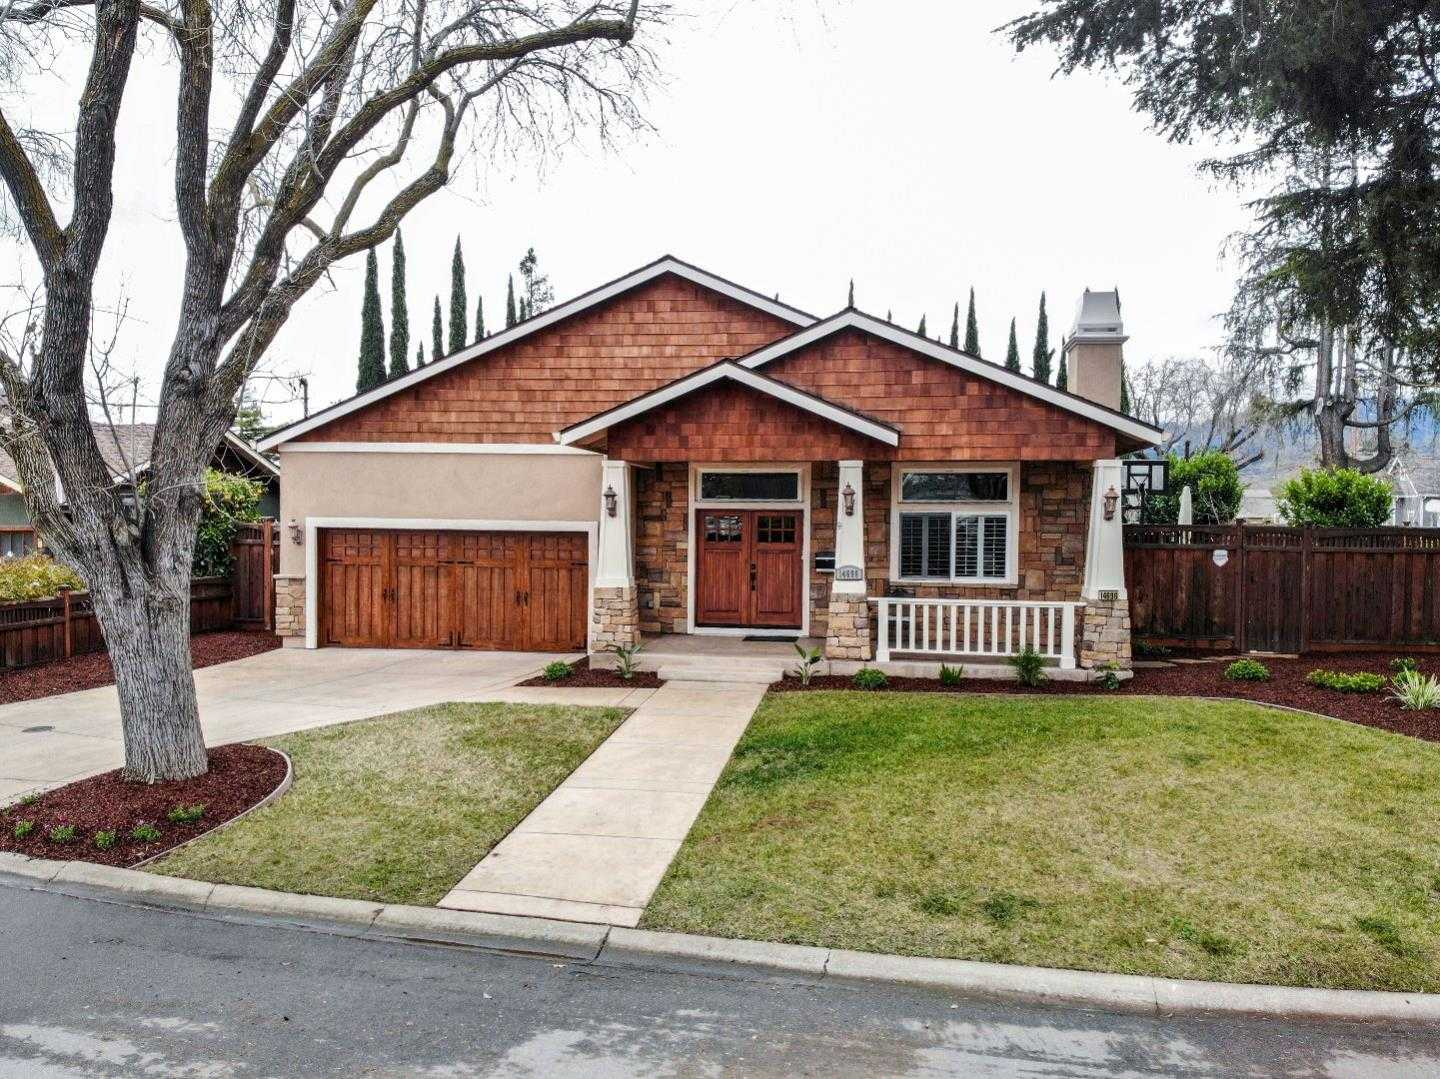 $2,395,000 - 4Br/4Ba -  for Sale in San Jose